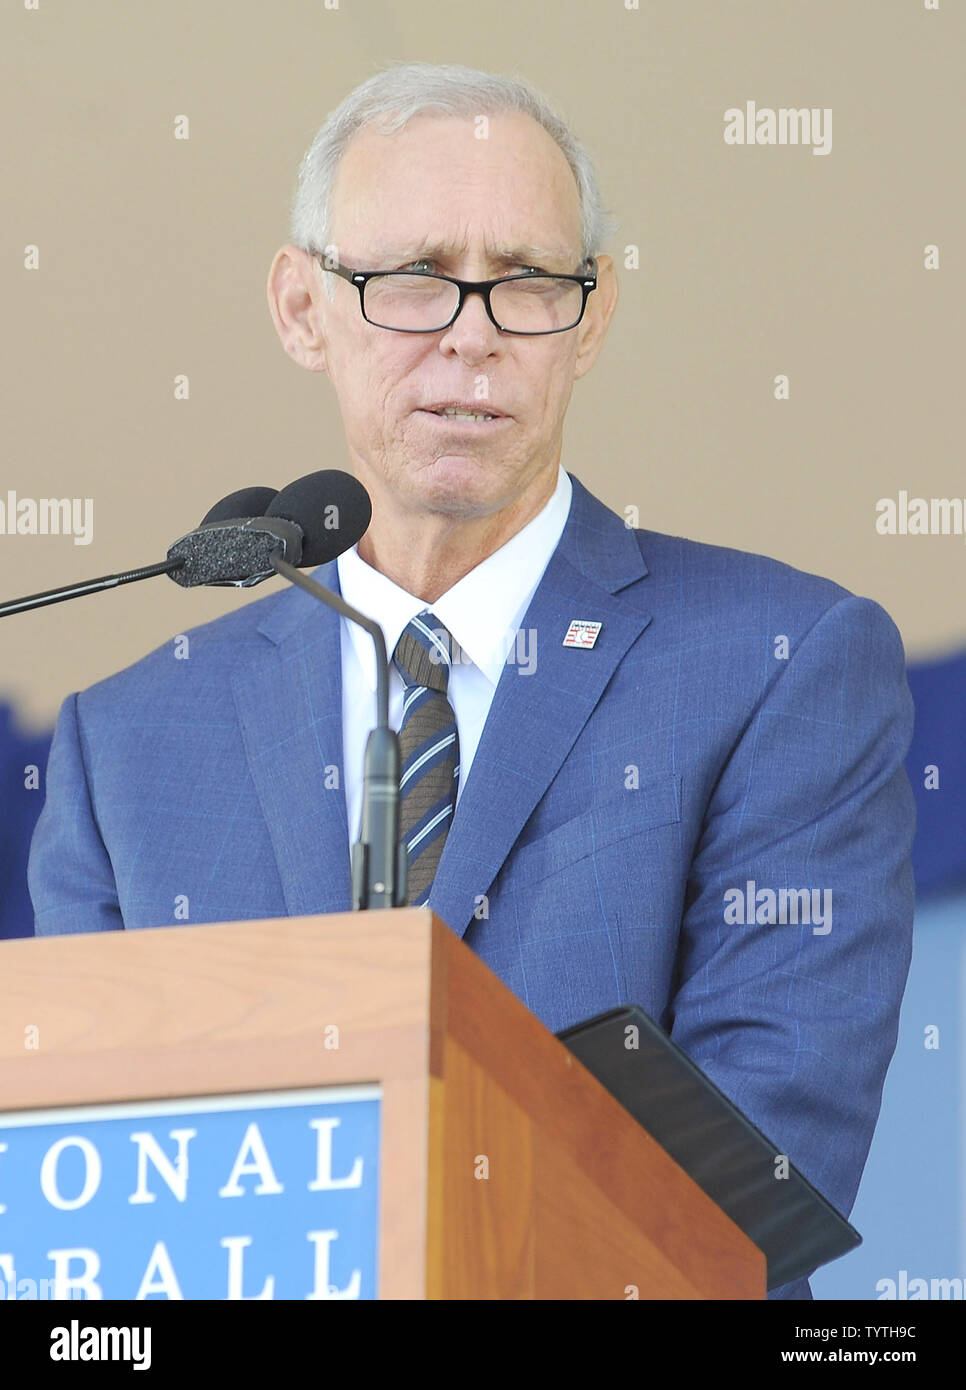 Alan Trammell delivers his Baseball Hall of Fame induction speech at the Clark Sports Center in Cooperstown, NY on July 29, 2018.  A record 60 Hall of Famers are scheduled to be in Central New York to honor Vladimir Guerrero, Trevor Hoffman, Chipper Jones, Jack Morris, Jim Thome and Alan Trammell at the National Baseball Hall of Fame and Museum during Hall of Fame Weekend on July 27-30.     Photo by George Napolitano/UPI - Stock Image